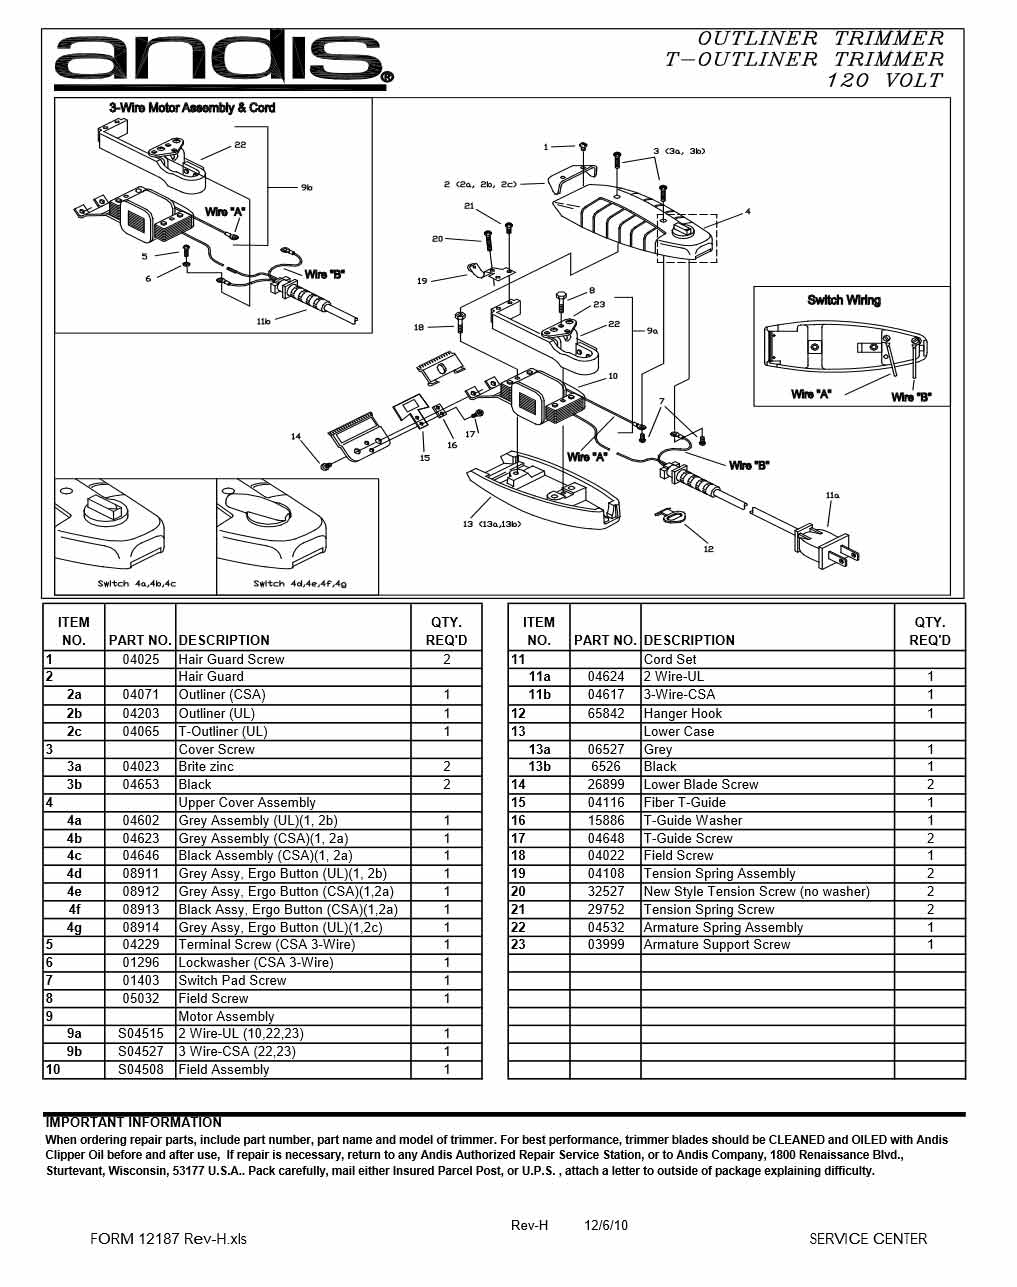 parts of the nose diagram ignition wiring andis outliner/ t-outliner lower blade screw #26899 - barber depot